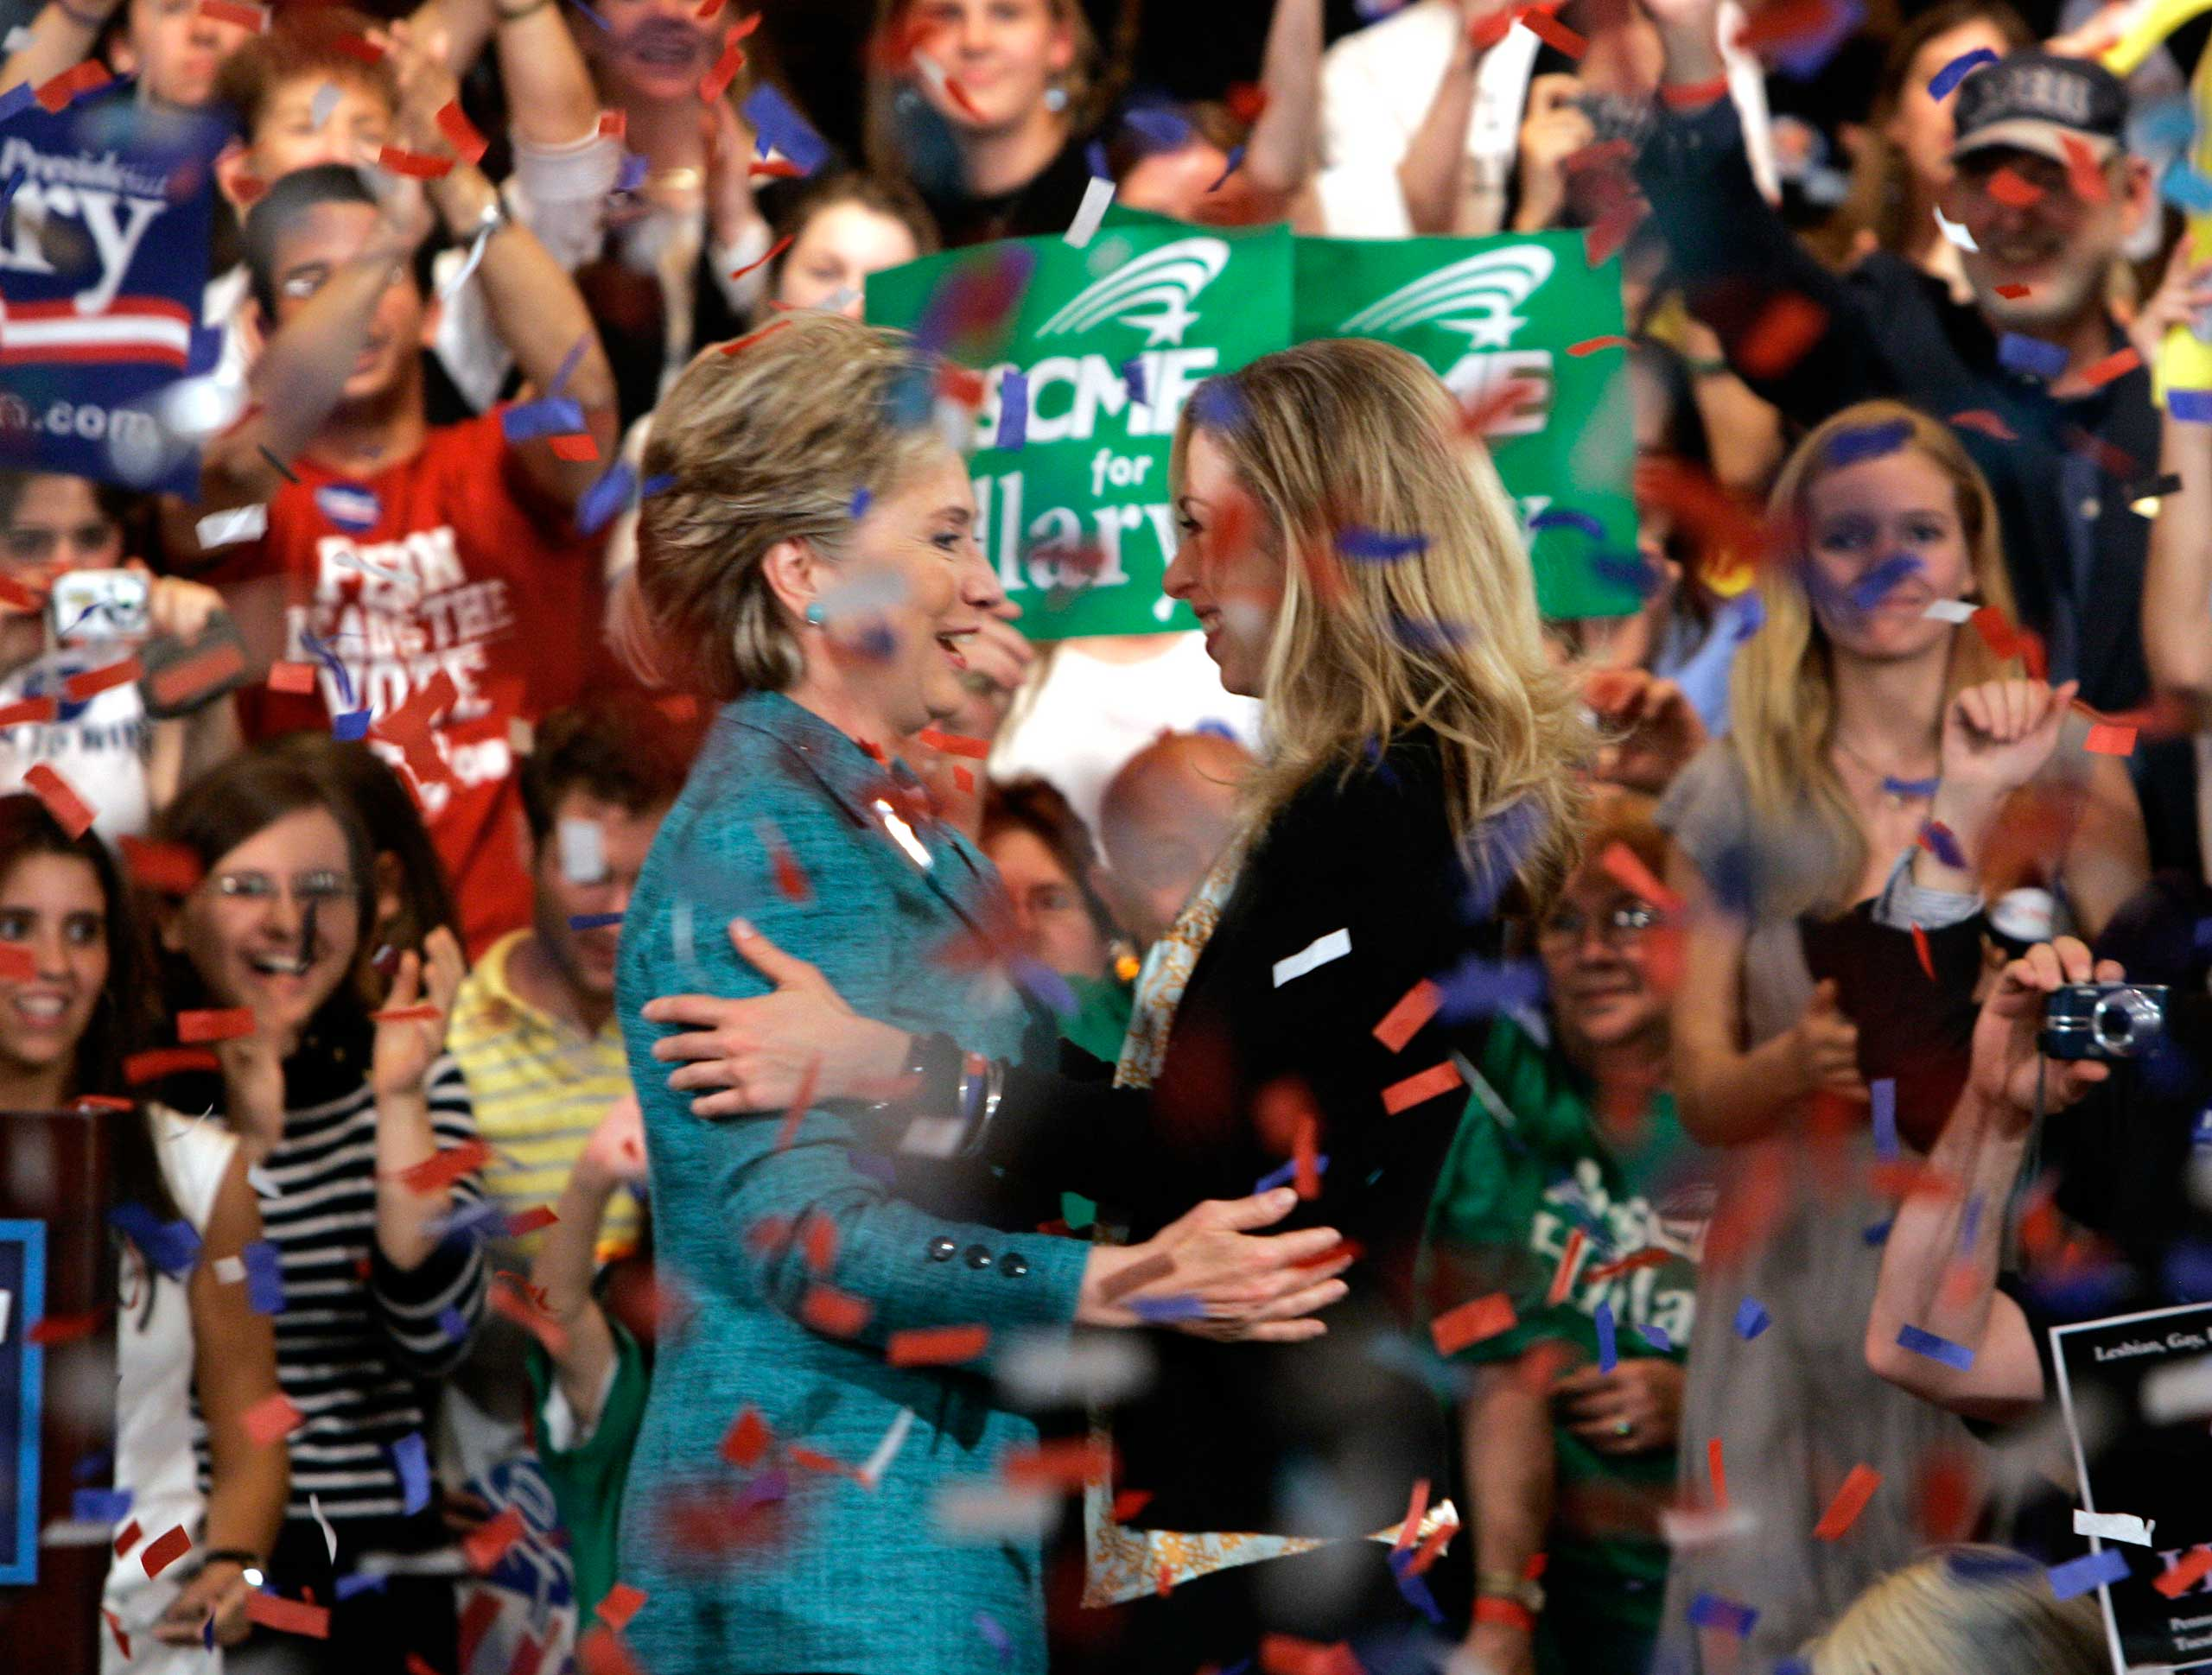 Democratic presidential hopeful Sen. Hillary Rodham Clinton, D-N.Y., celebrates with her daughter Chelsea Clinton at her primary election night rally in Philadelphia on April 22, 2008.